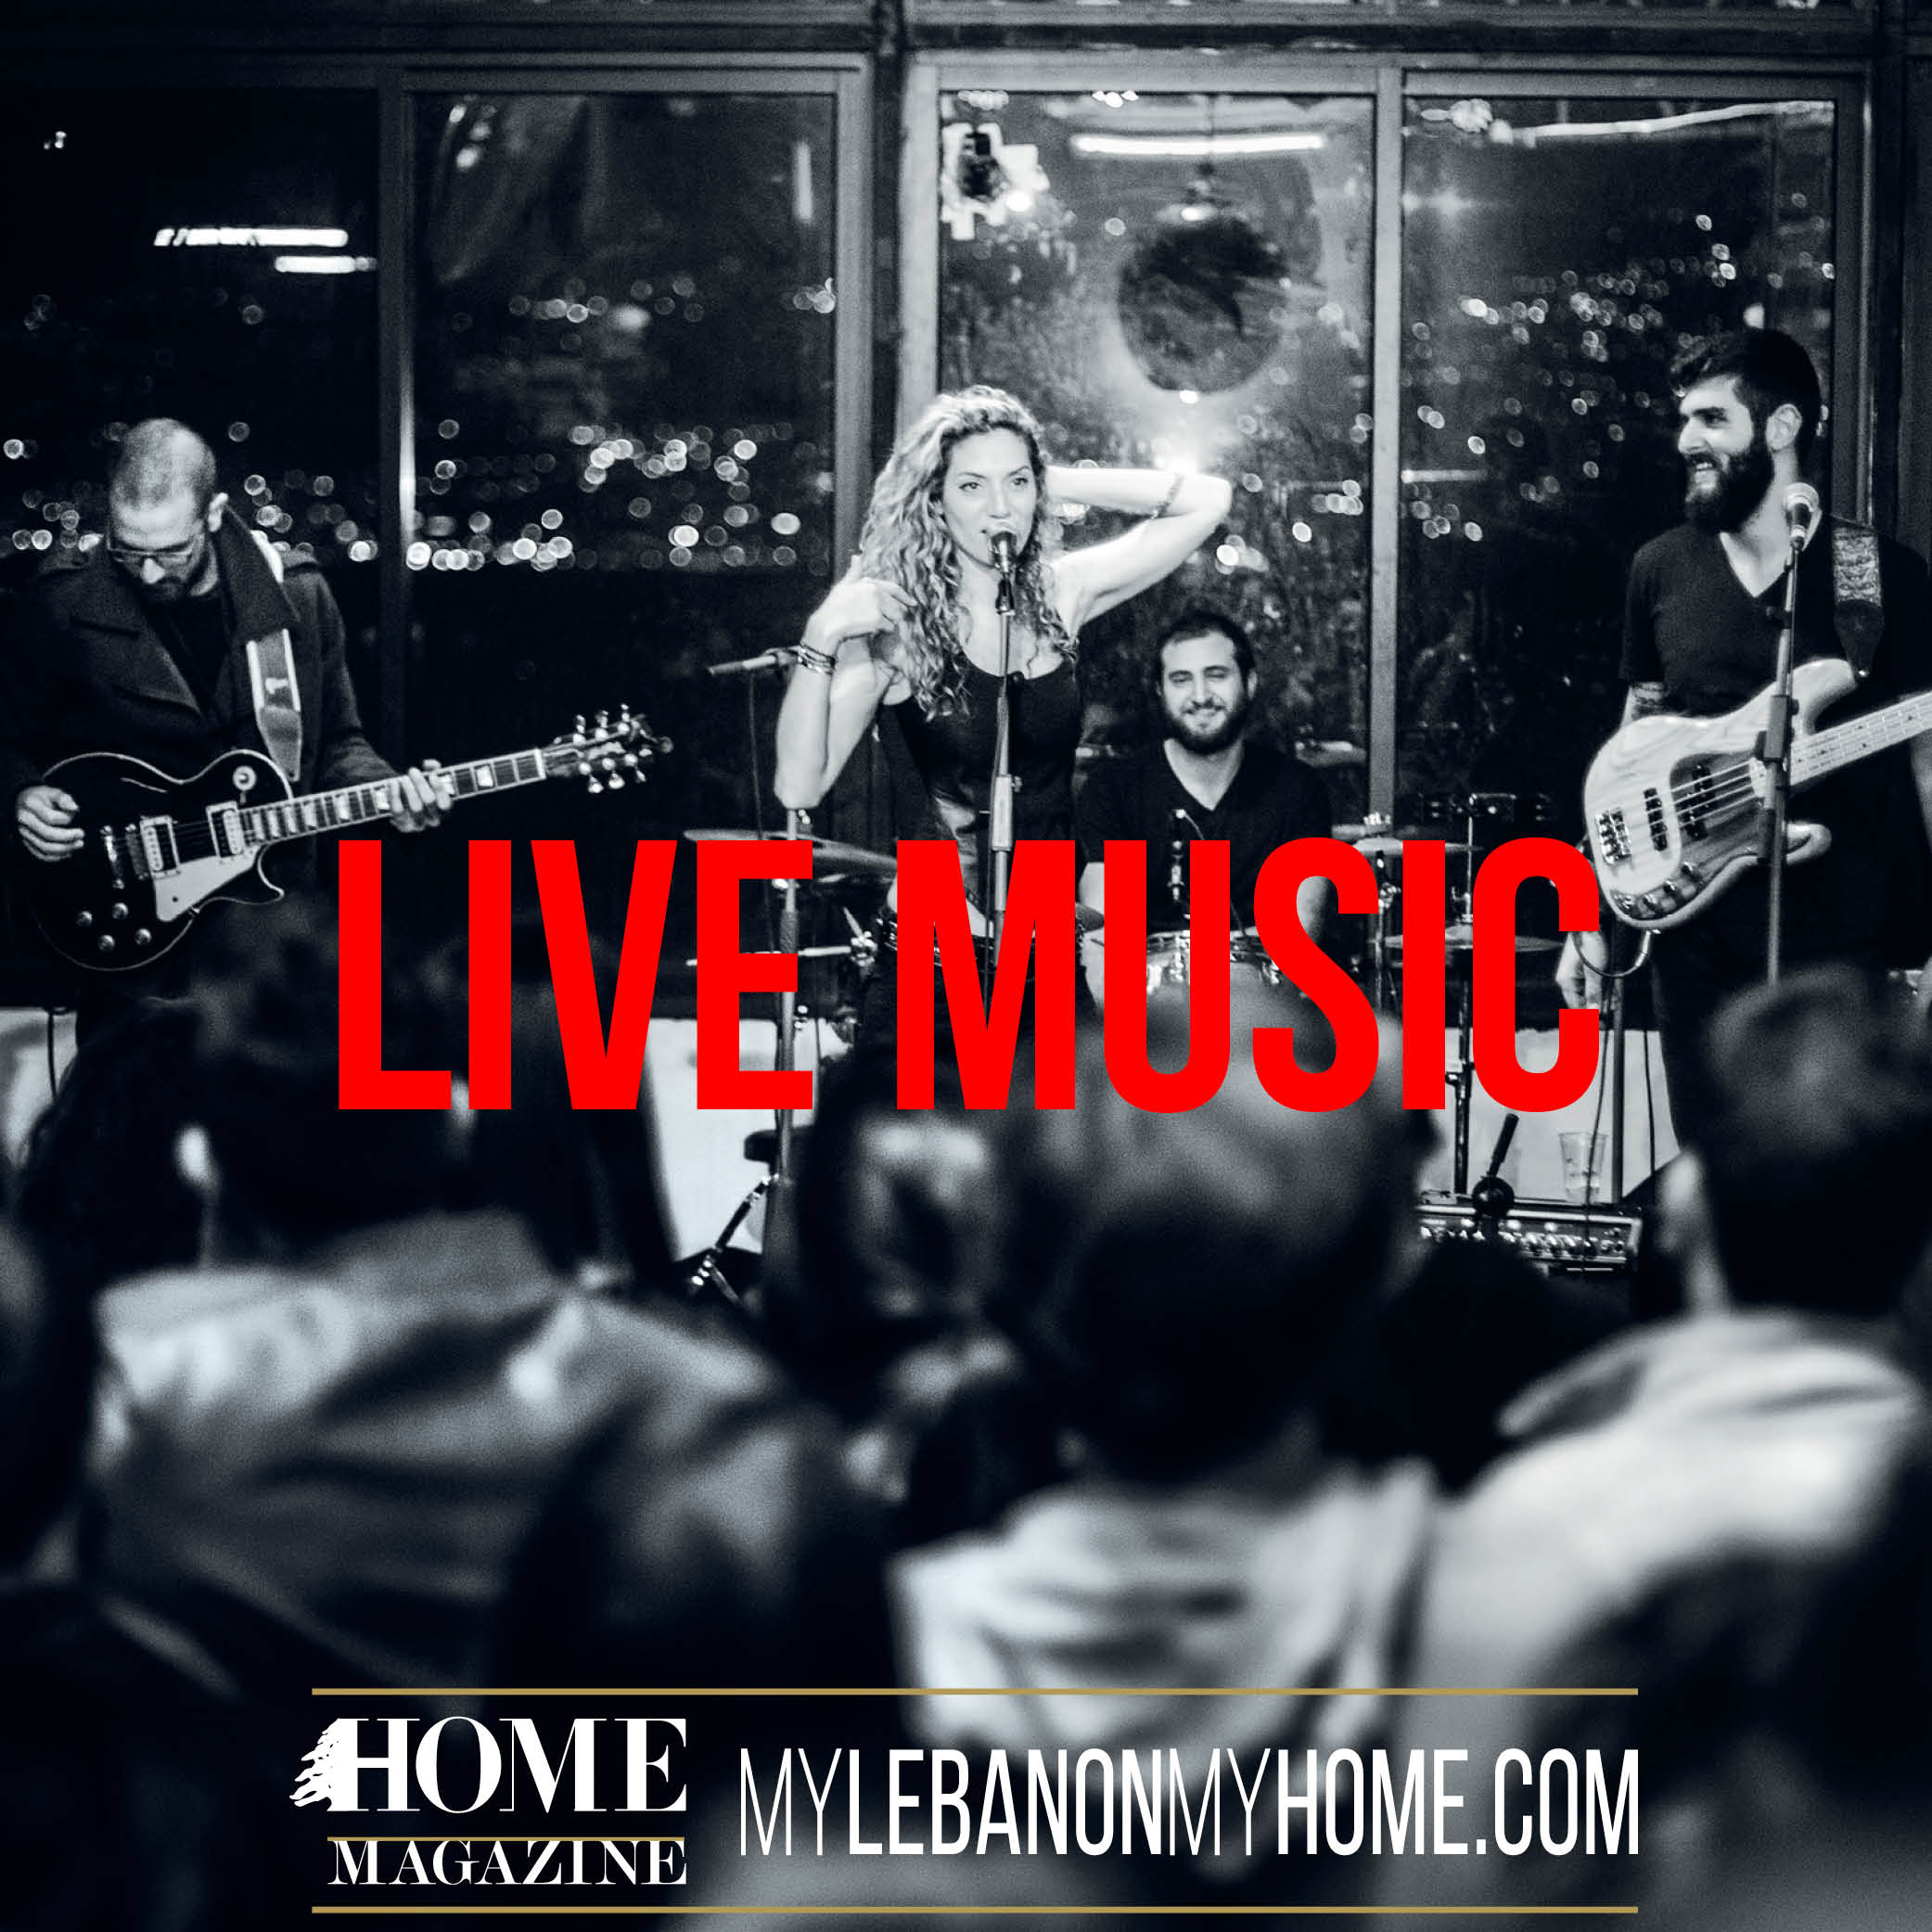 LIVE MUSIC IS THRIVING IN LEBANON